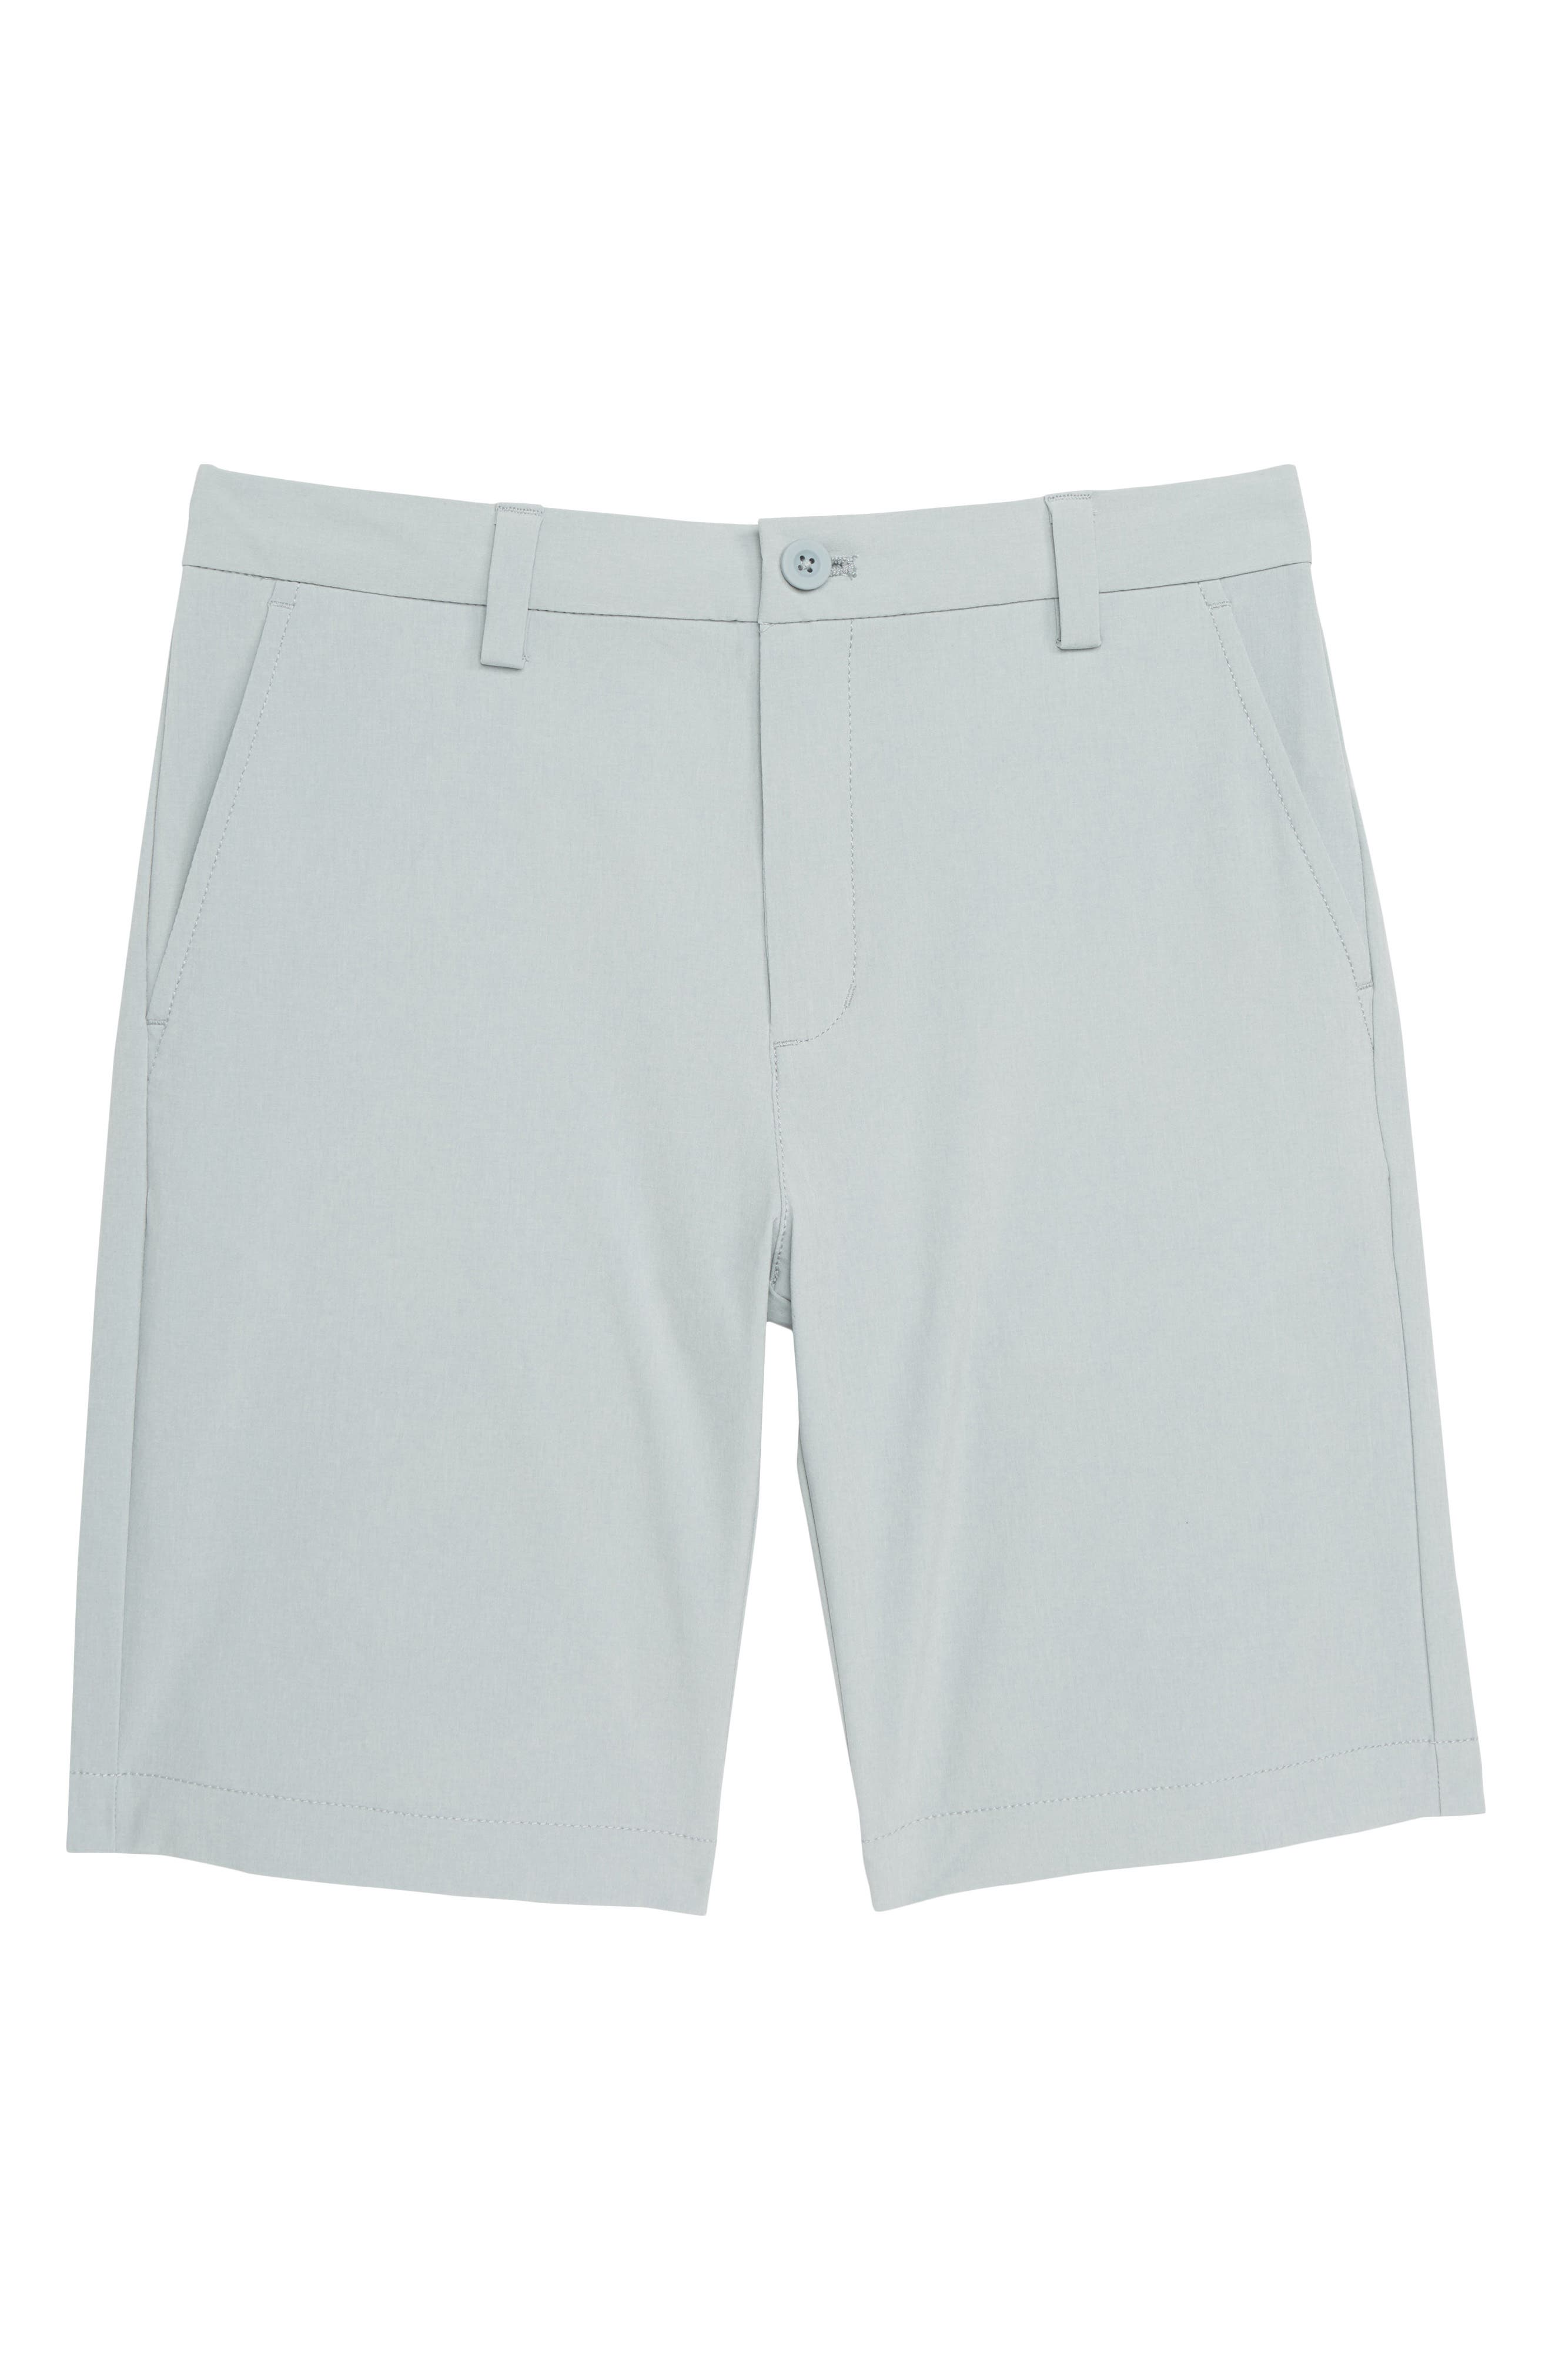 Performance Breaker Shorts,                         Main,                         color, 034